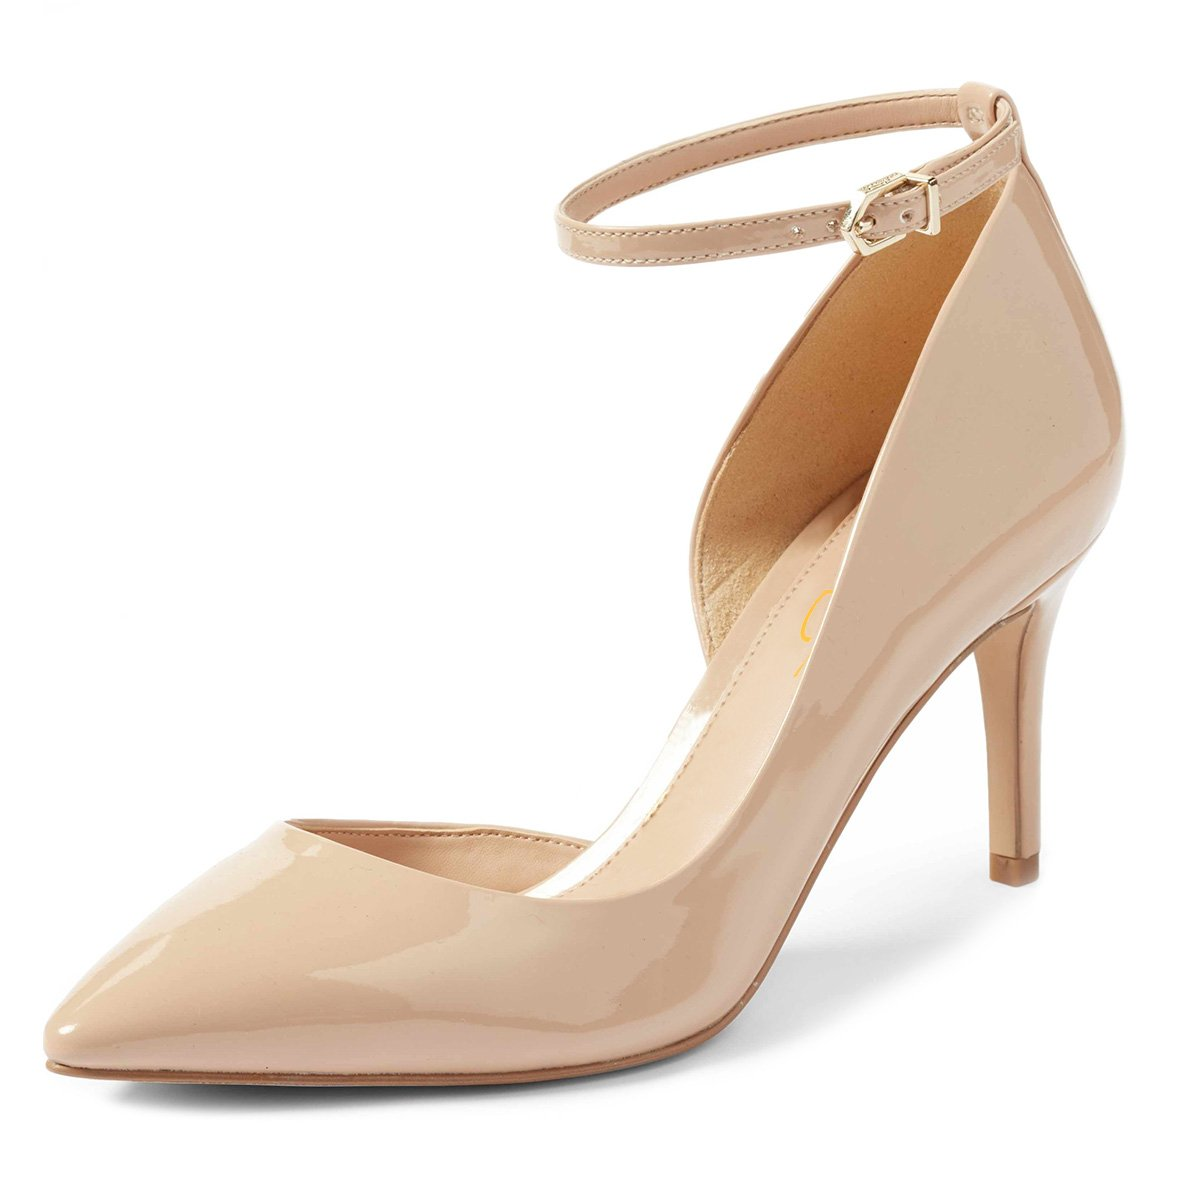 XYD Women Pointed Toe D'Orsay Mid Heel Pumps Ankle Strap Buckled Wedding Party Dress Shoes B078XPXLSD 7 B(M) US|Nude